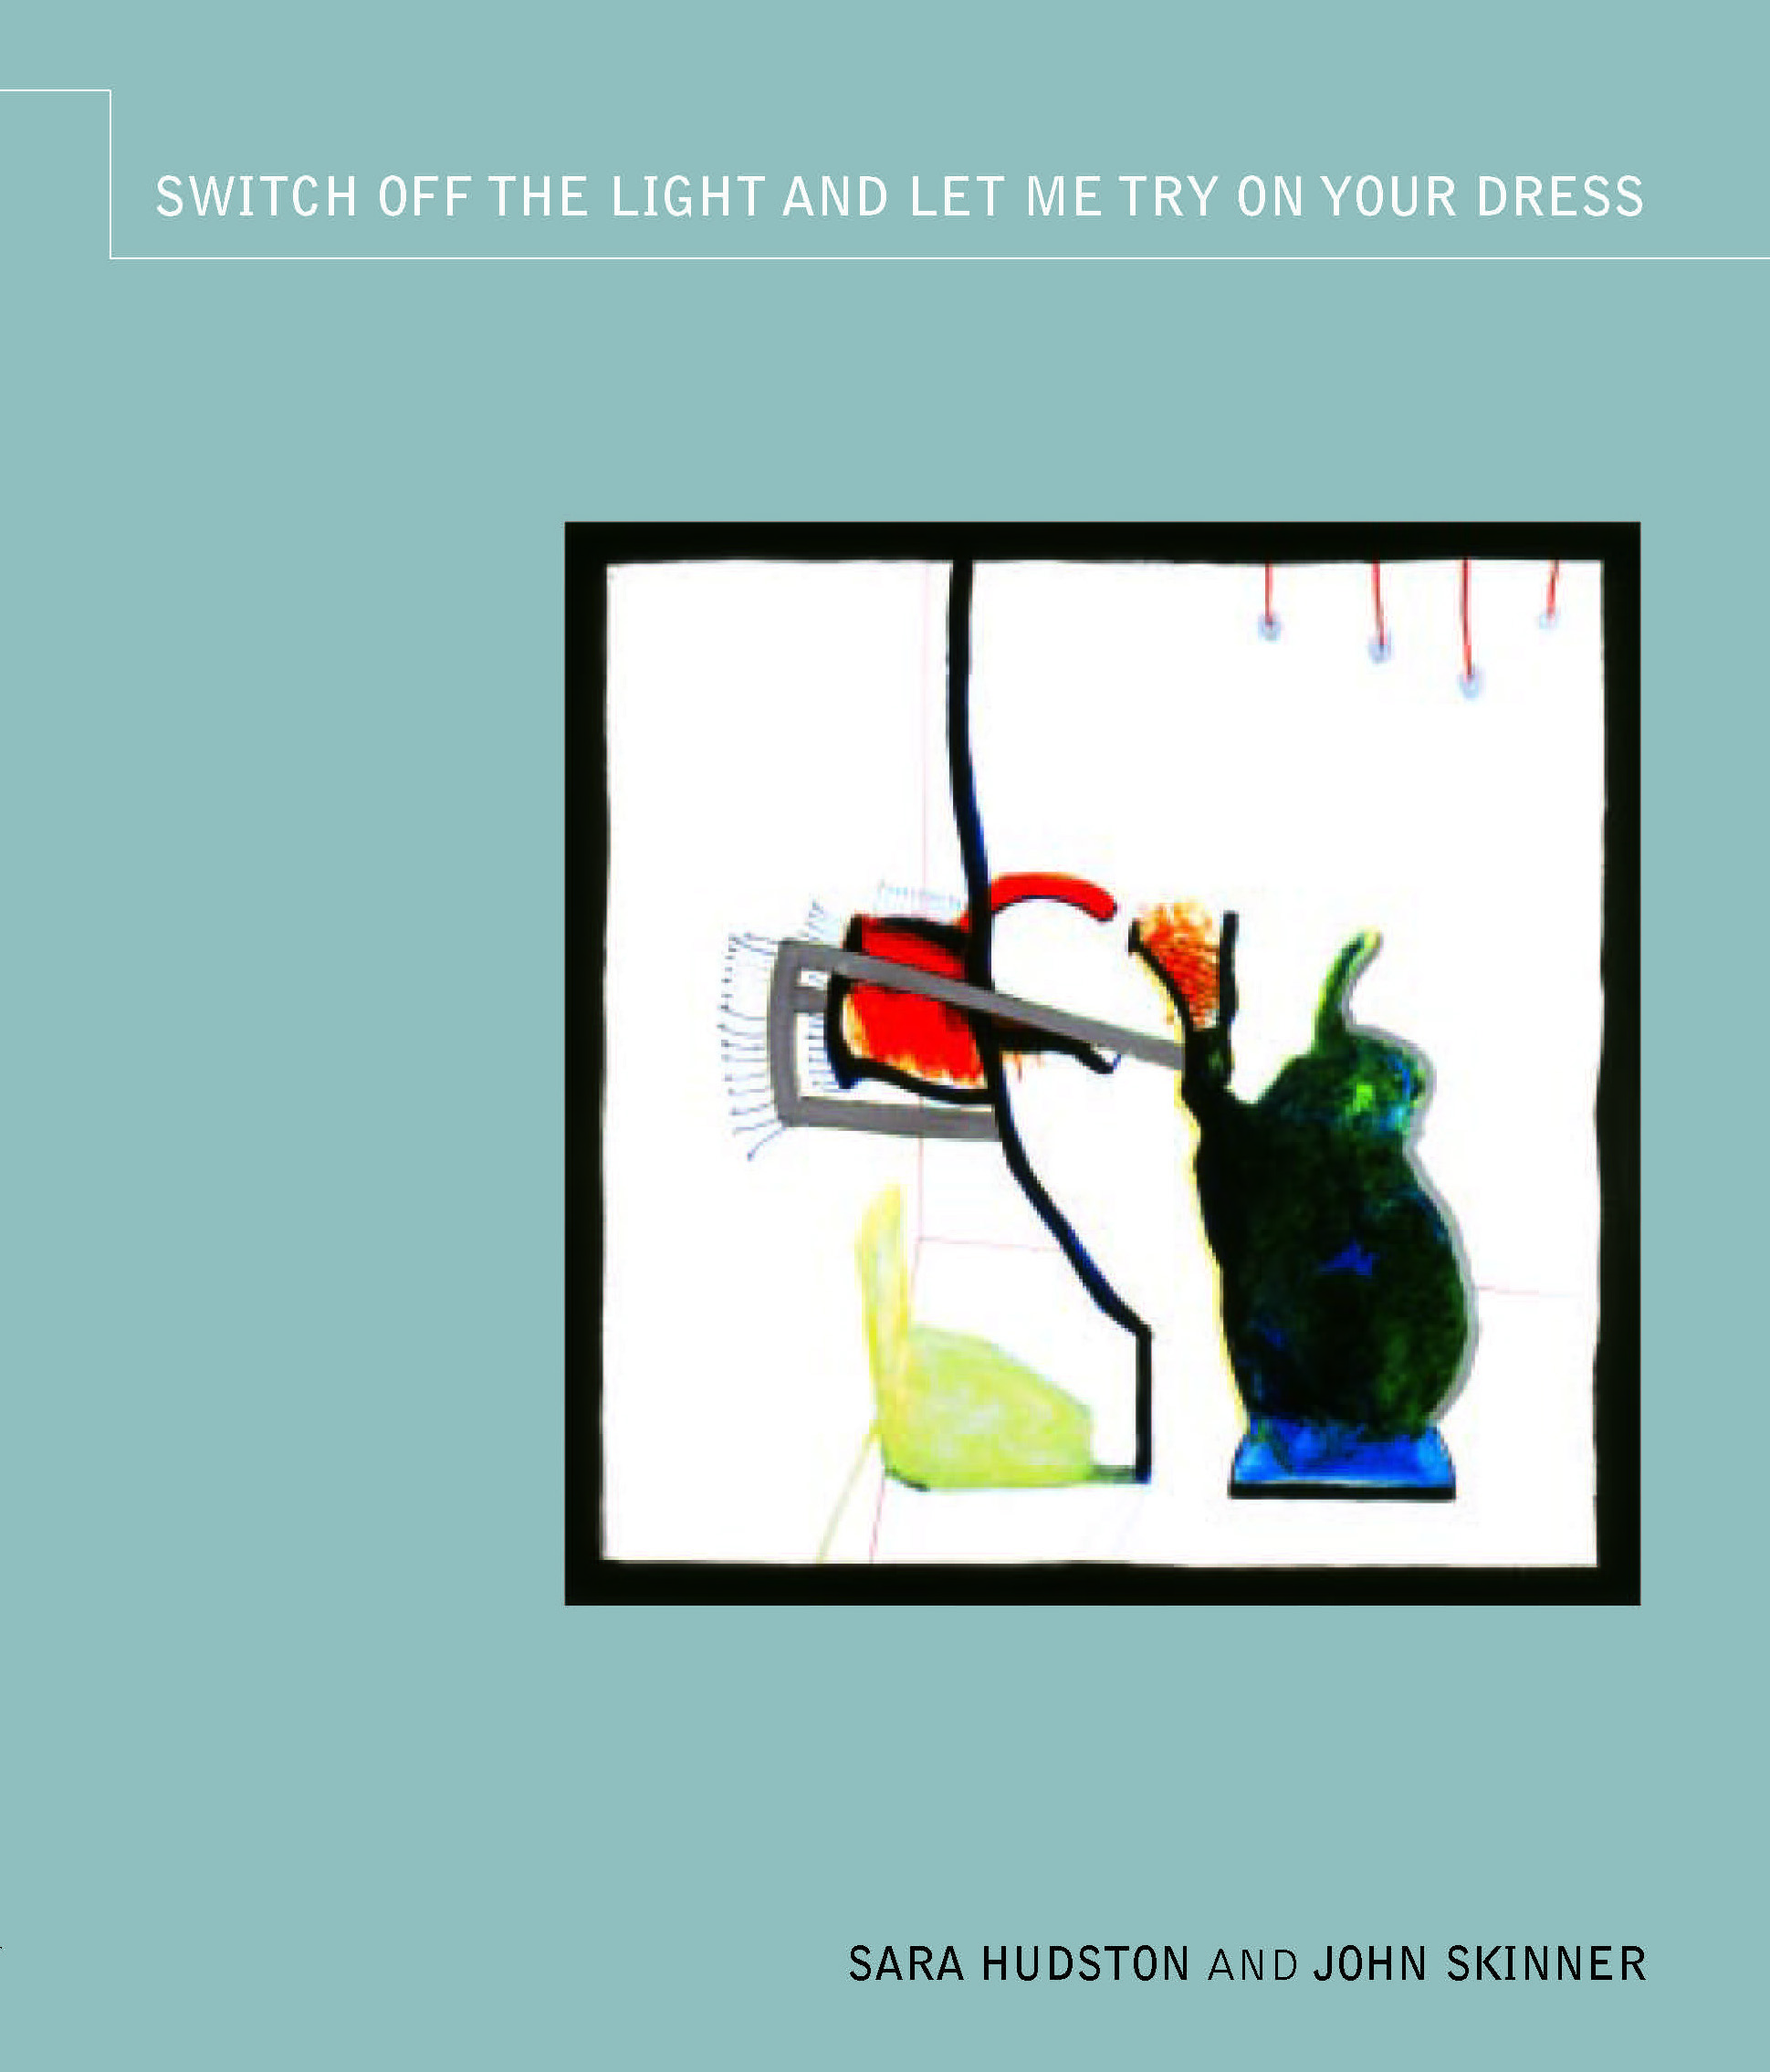 Switch off the light and let me try on your dress